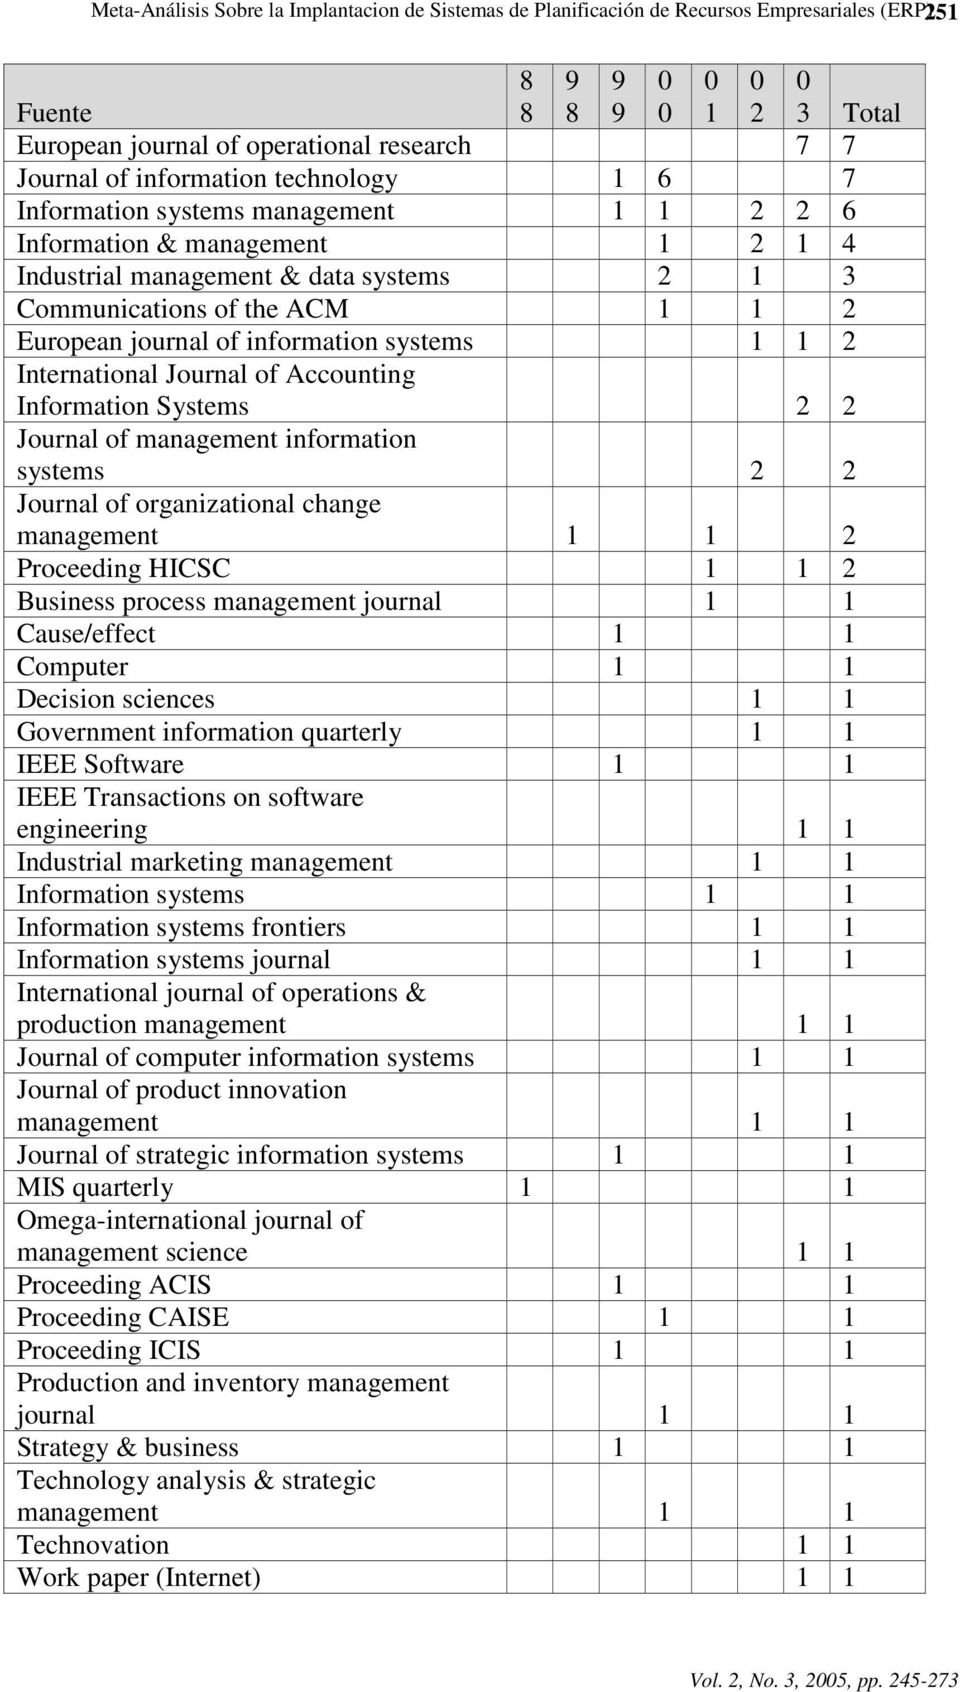 information systems 1 1 2 International Journal of Accounting Information Systems 2 2 Journal of management information systems 2 2 Journal of organizational change management 1 1 2 Proceeding HICSC